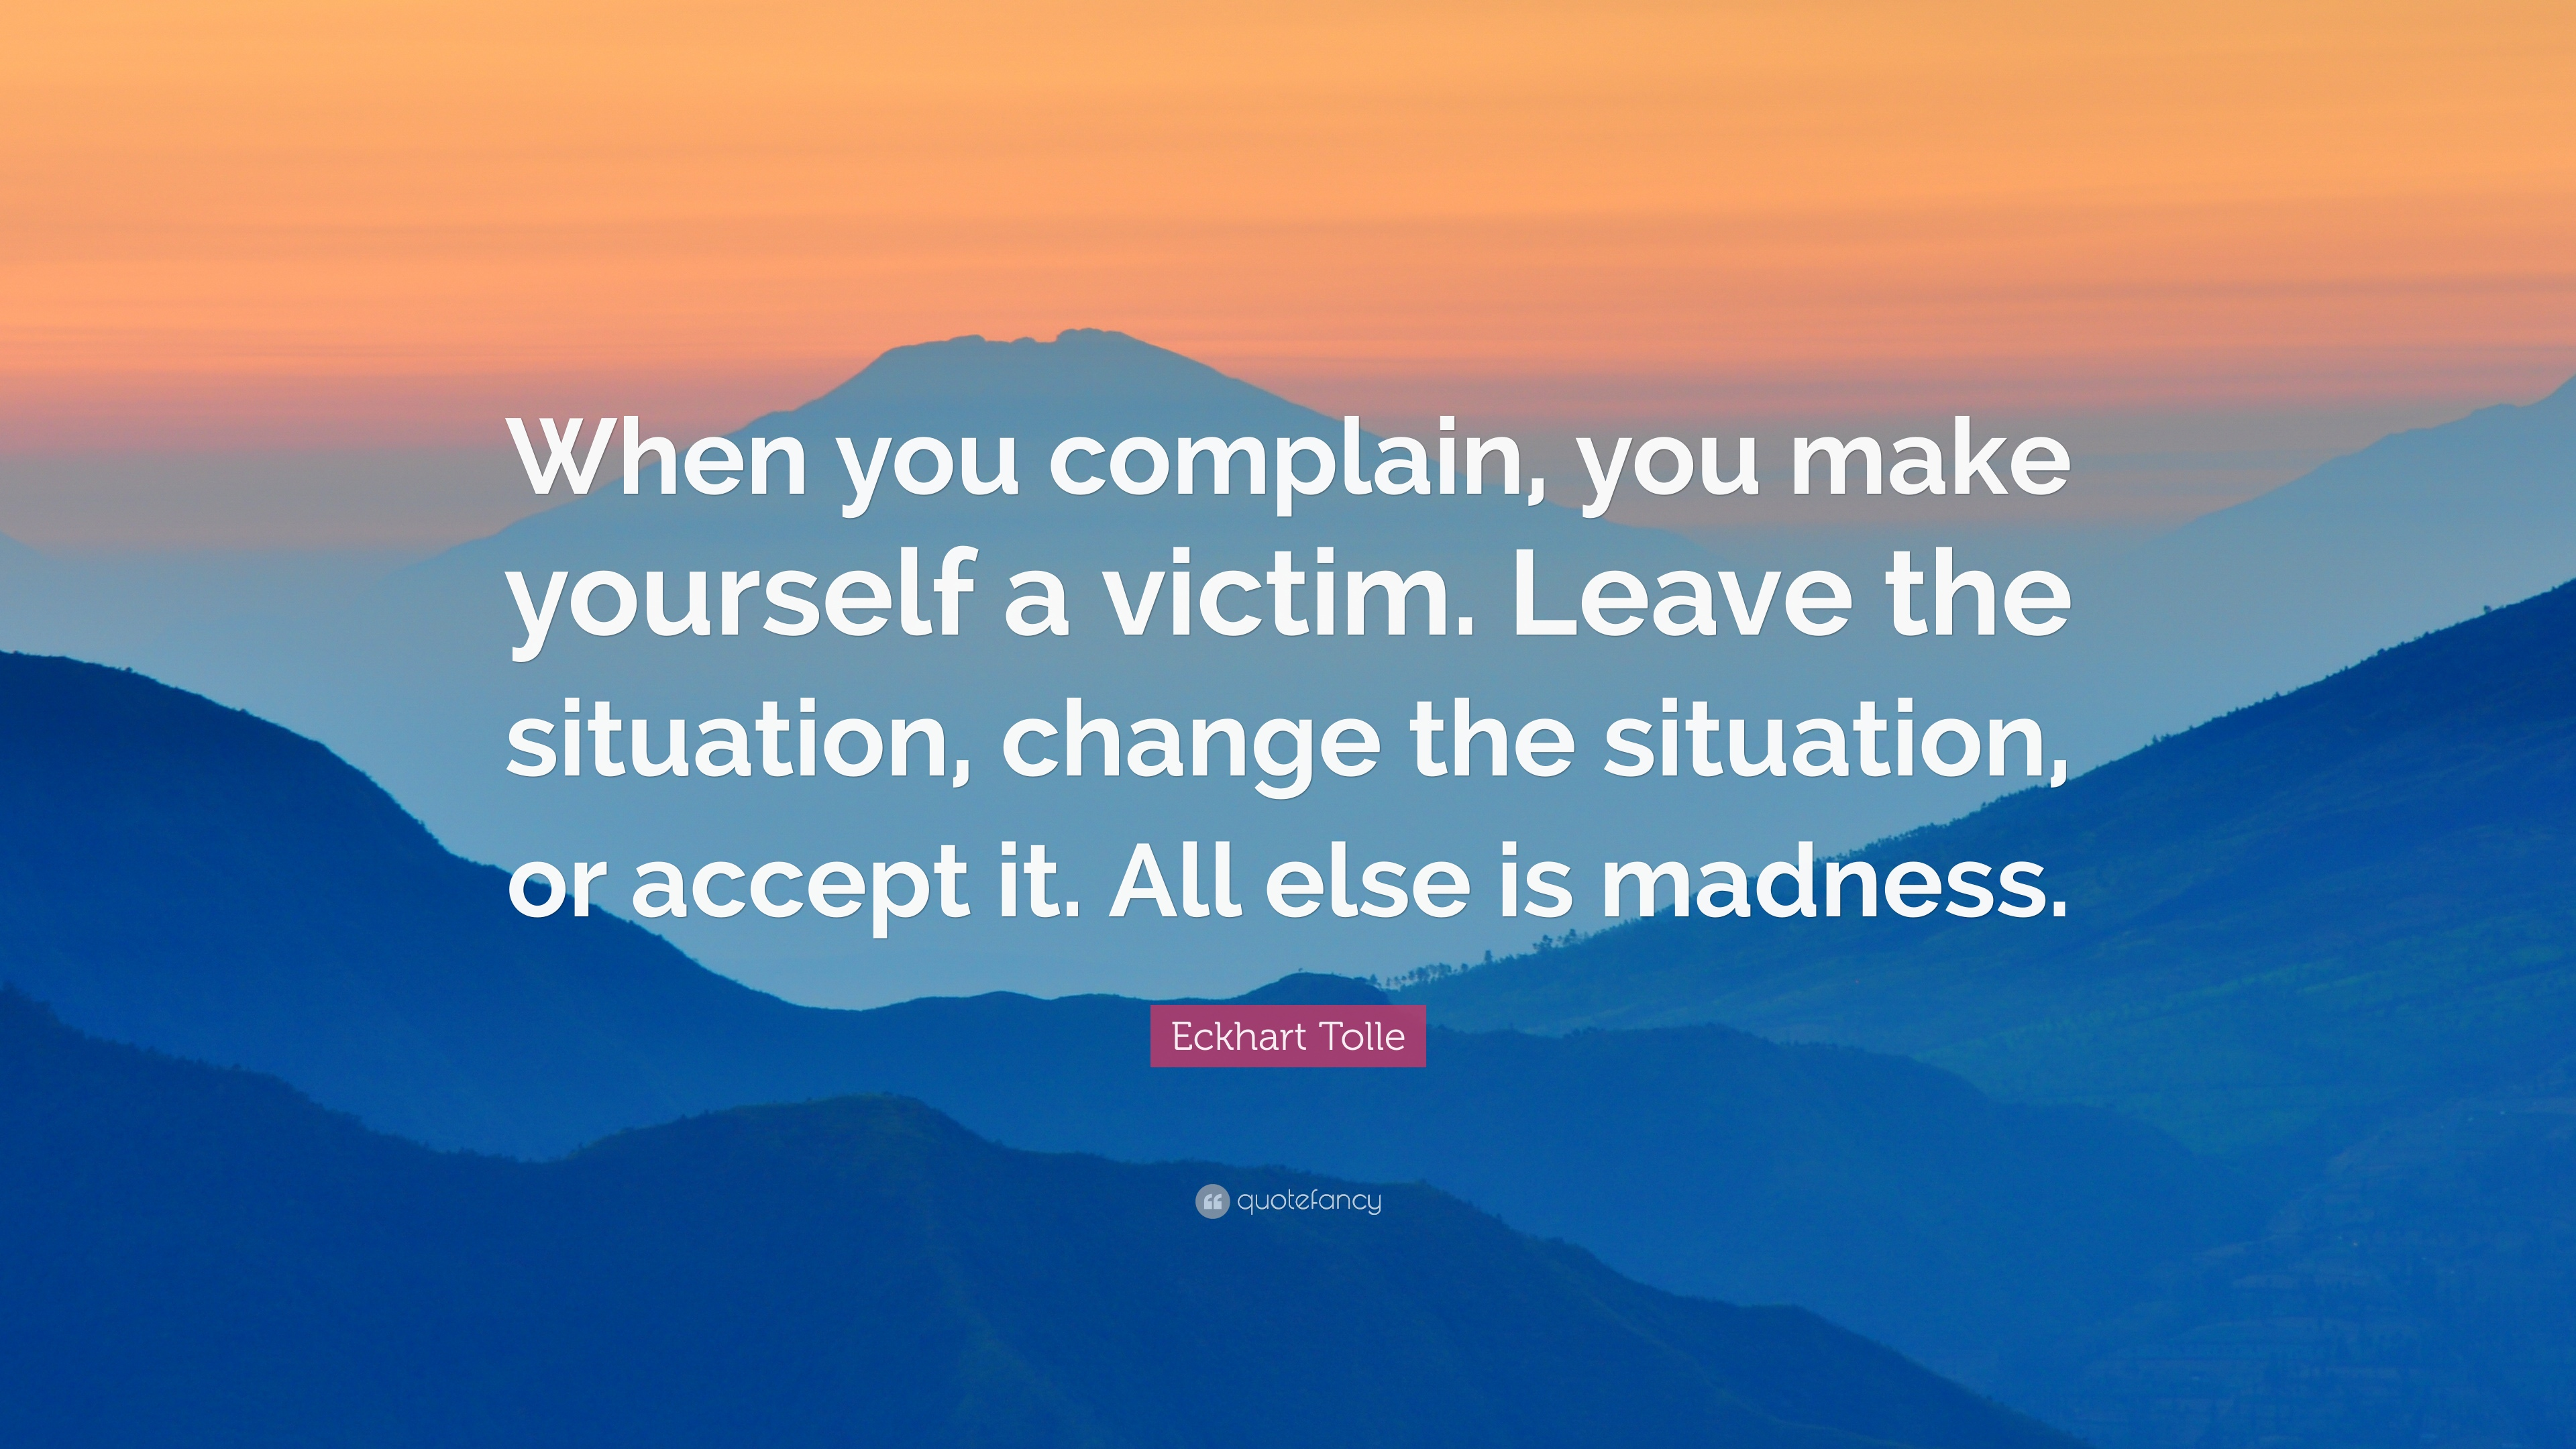 Eckhart tolle quote when you complain you make yourself a victim eckhart tolle quote when you complain you make yourself a victim leave solutioingenieria